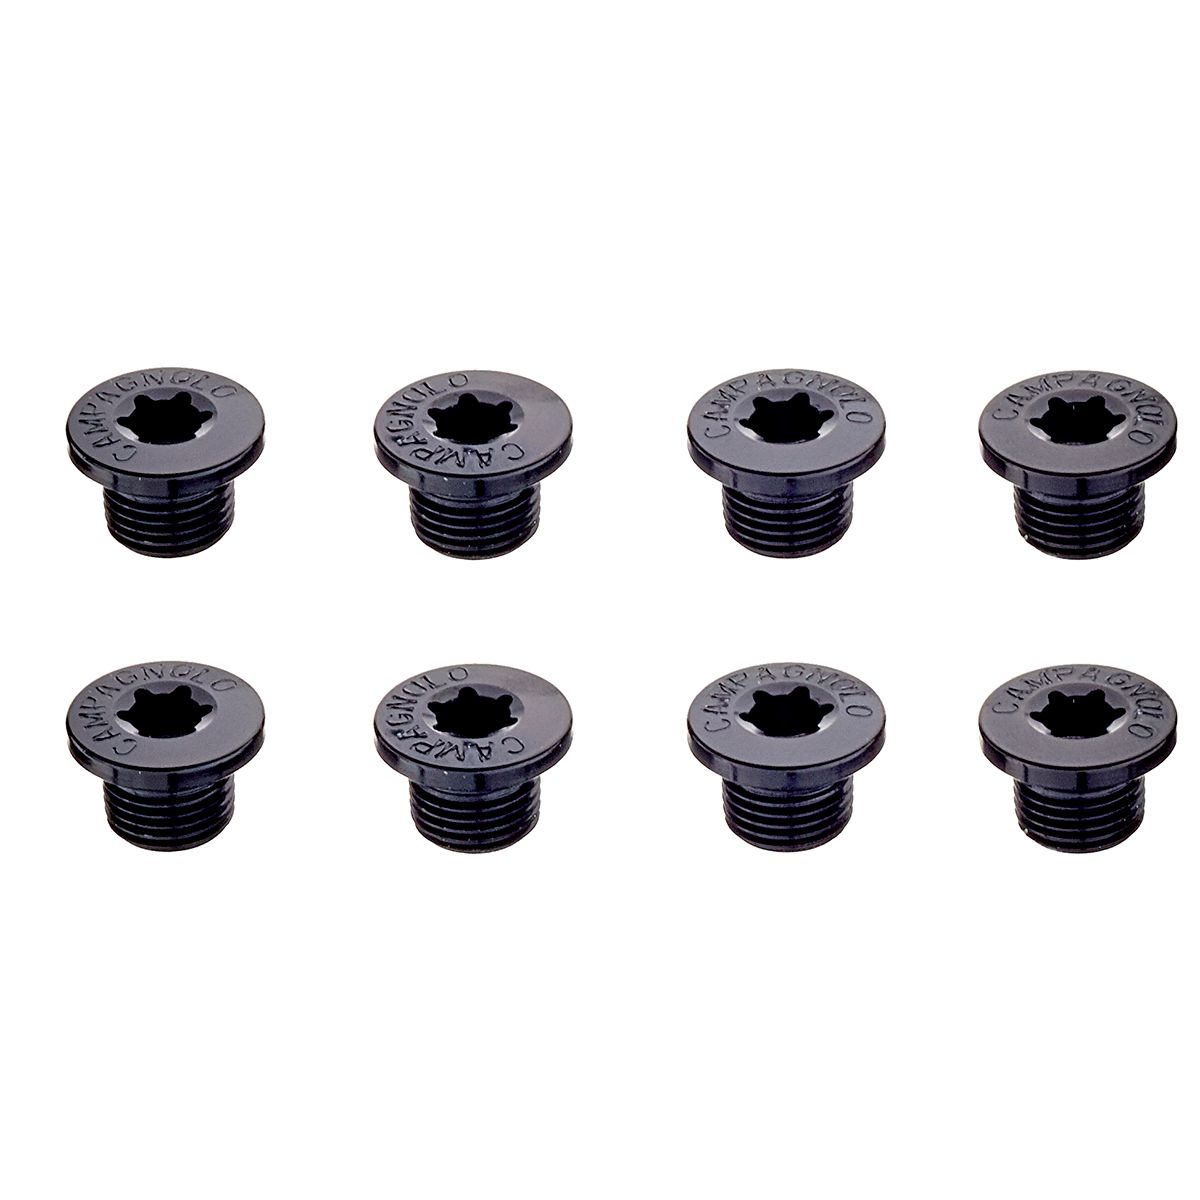 Chainring bolts FC-SR300